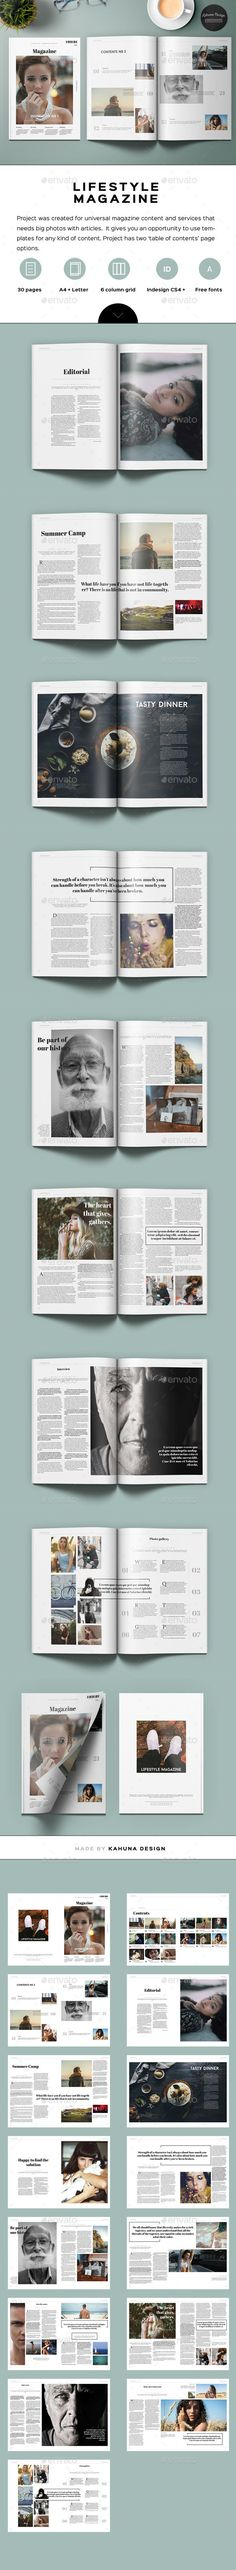 Lifestyle Universal Magazine — InDesign INDD #elegant #type • Available here → https://graphicriver.net/item/lifestyle-universal-magazine/14878763?ref=pxcr